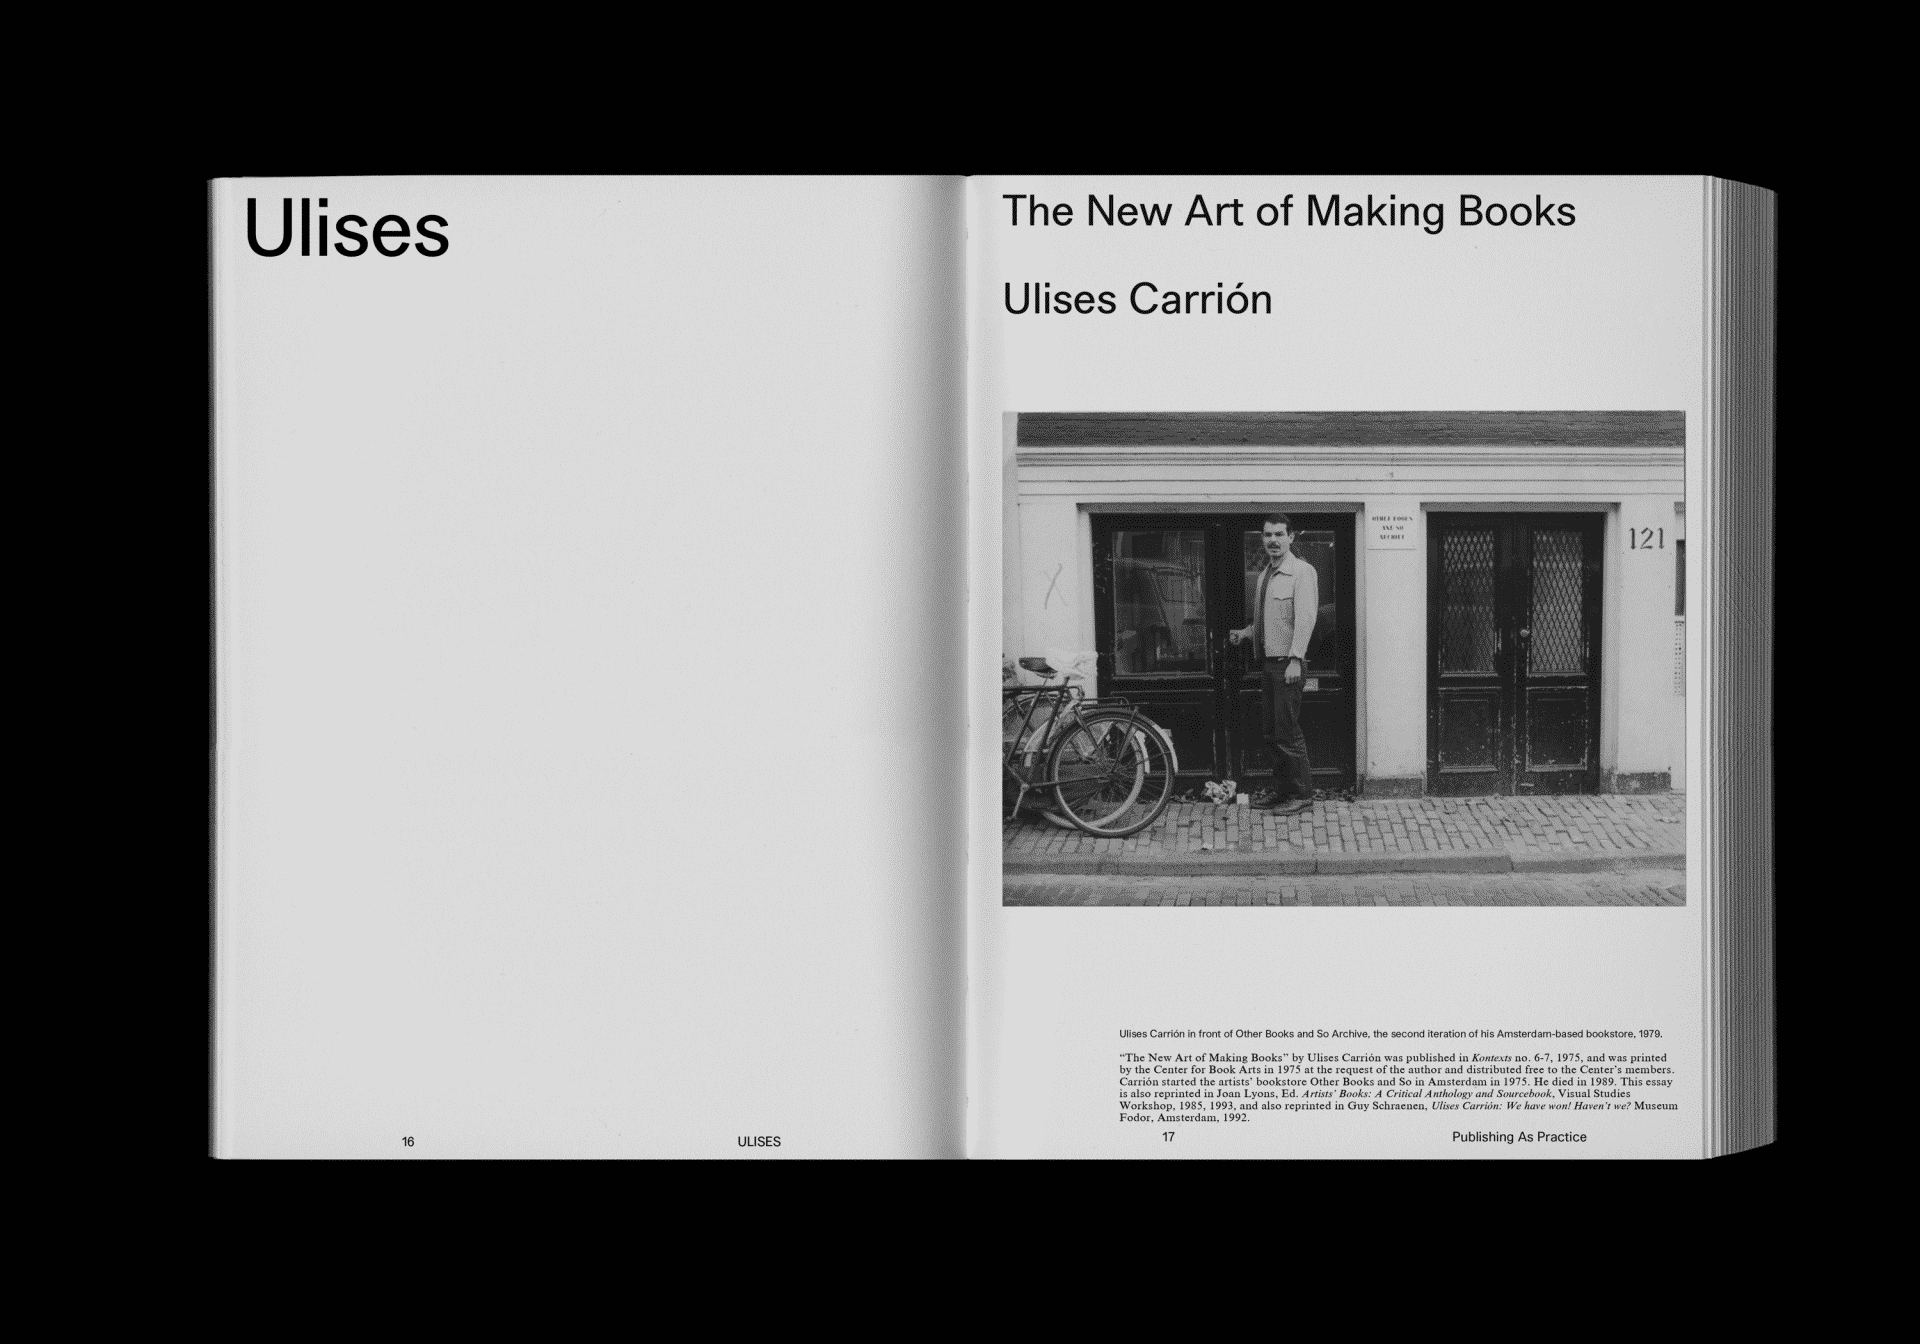 ricky yanas ulises carrion book store artist book philadelphia creative repute graphic design agency artist interview